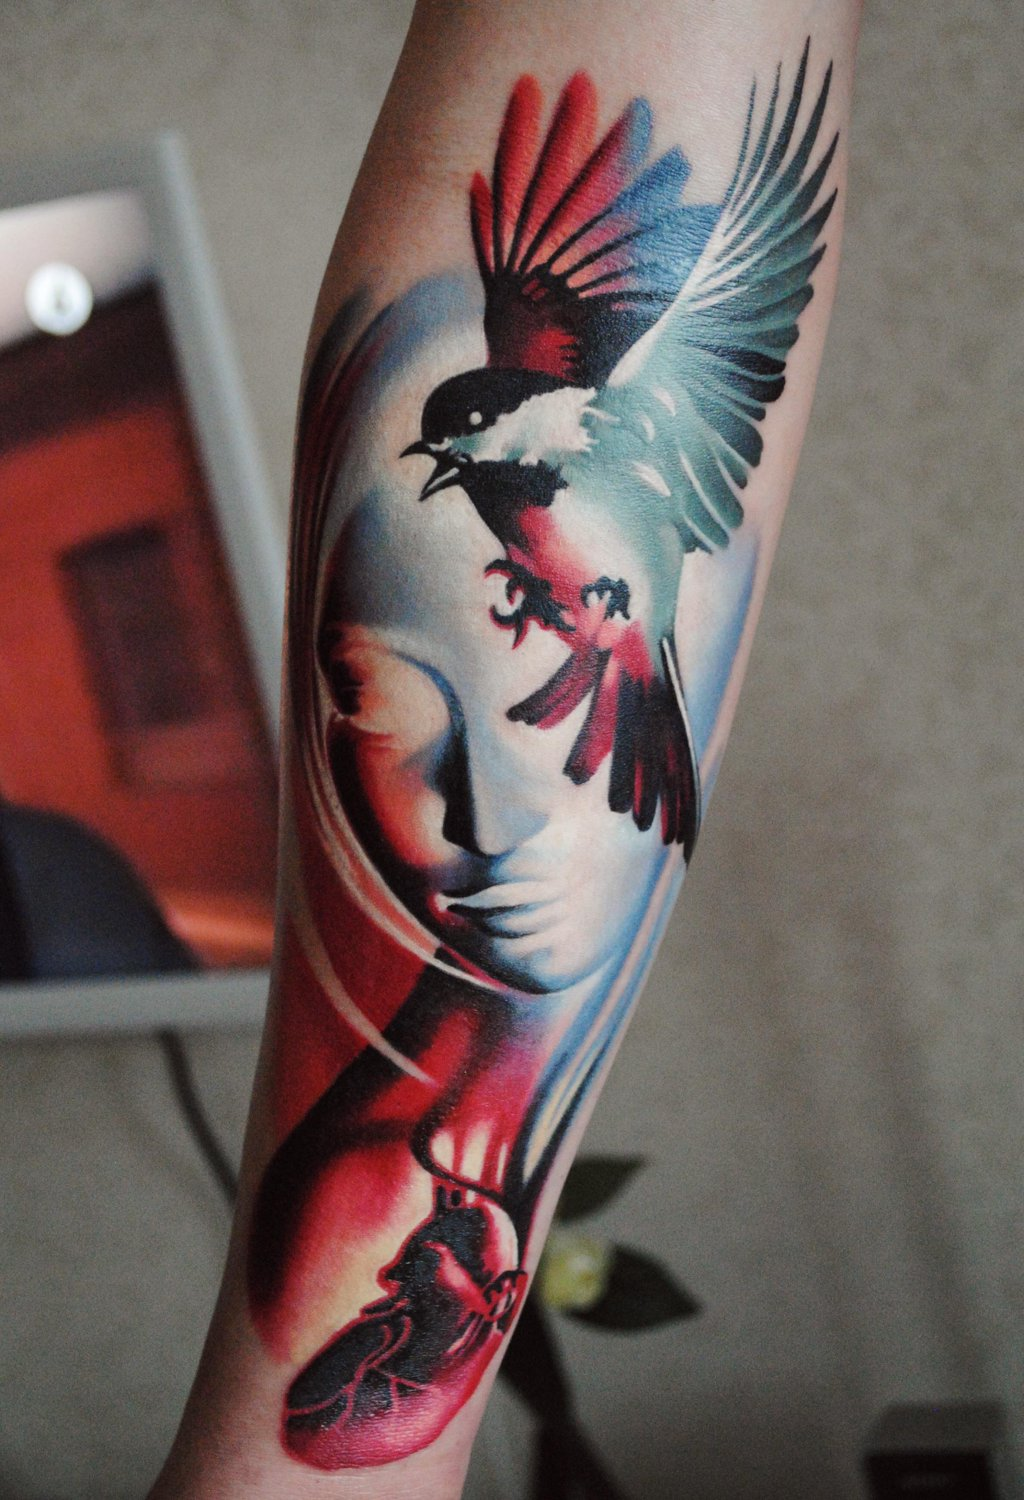 80 great arm tattoos ideas that you can share with friends for Tattoos in arm